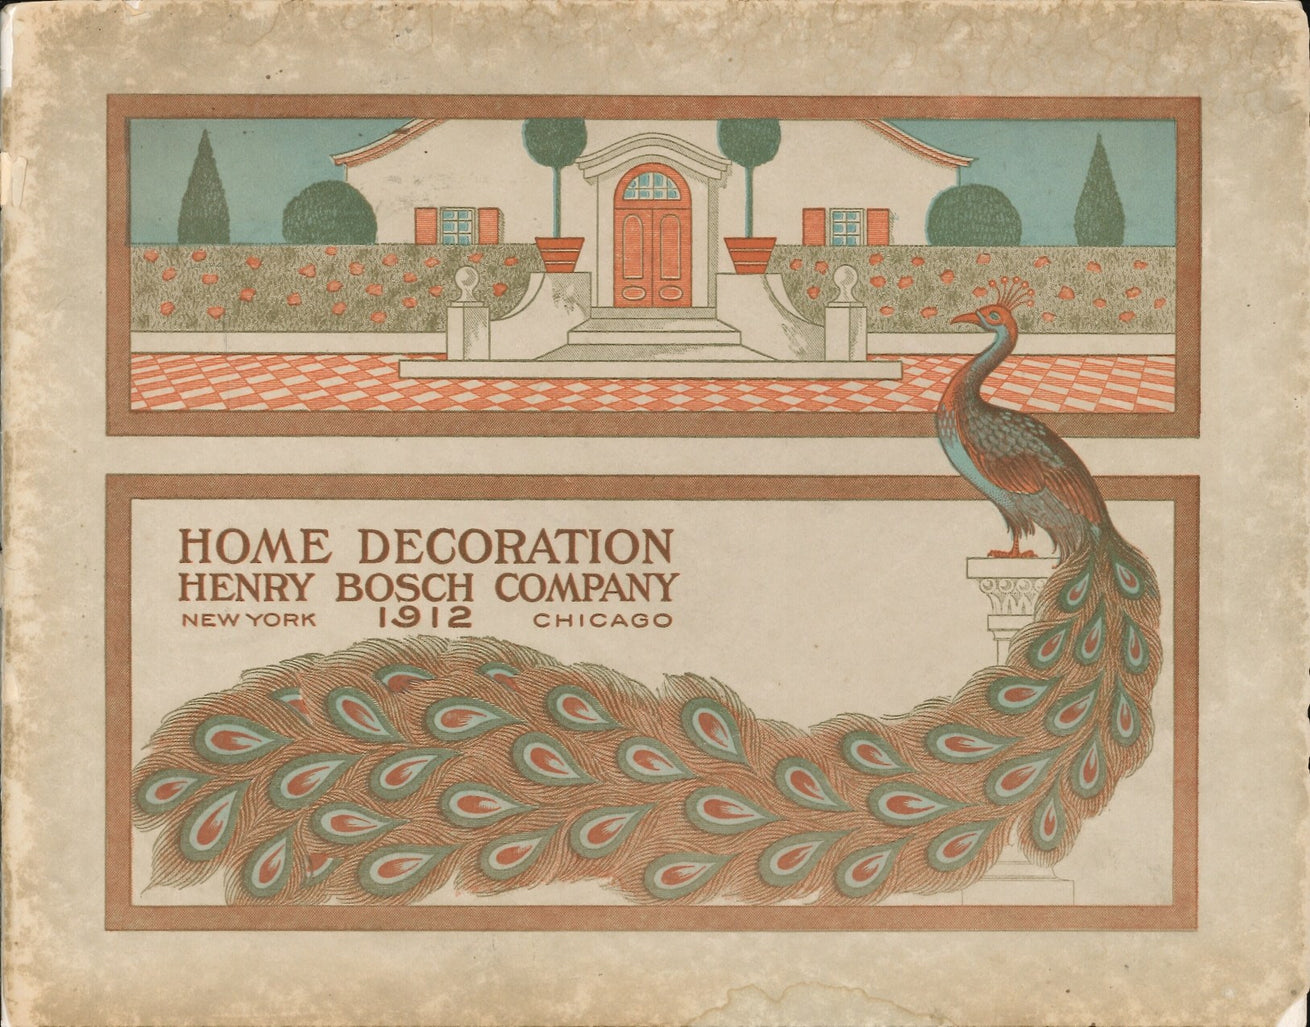 1912 Henry Bosch Modern Home Decoration